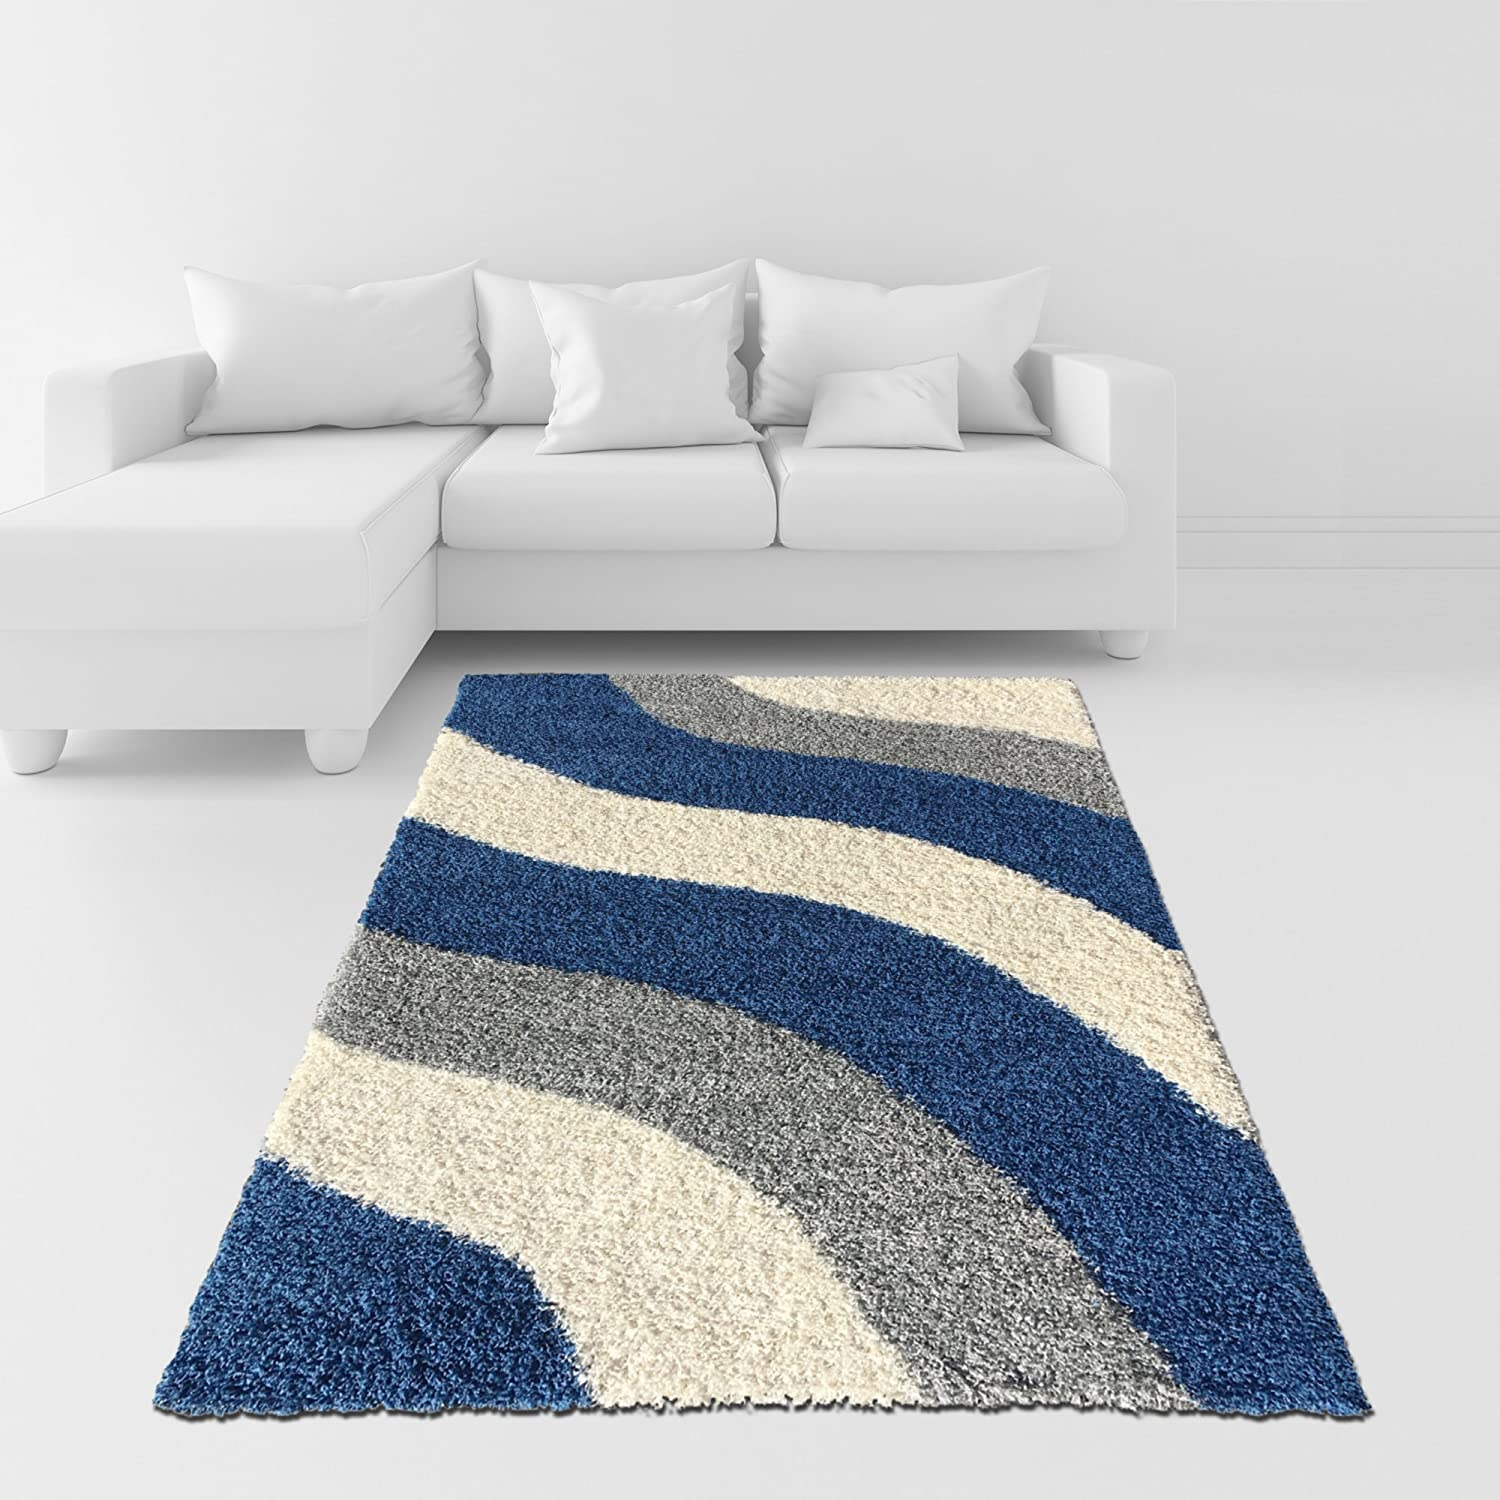 Amazon Soft Shag Area Rug 7x10 Geometric Striped Ivory Blue